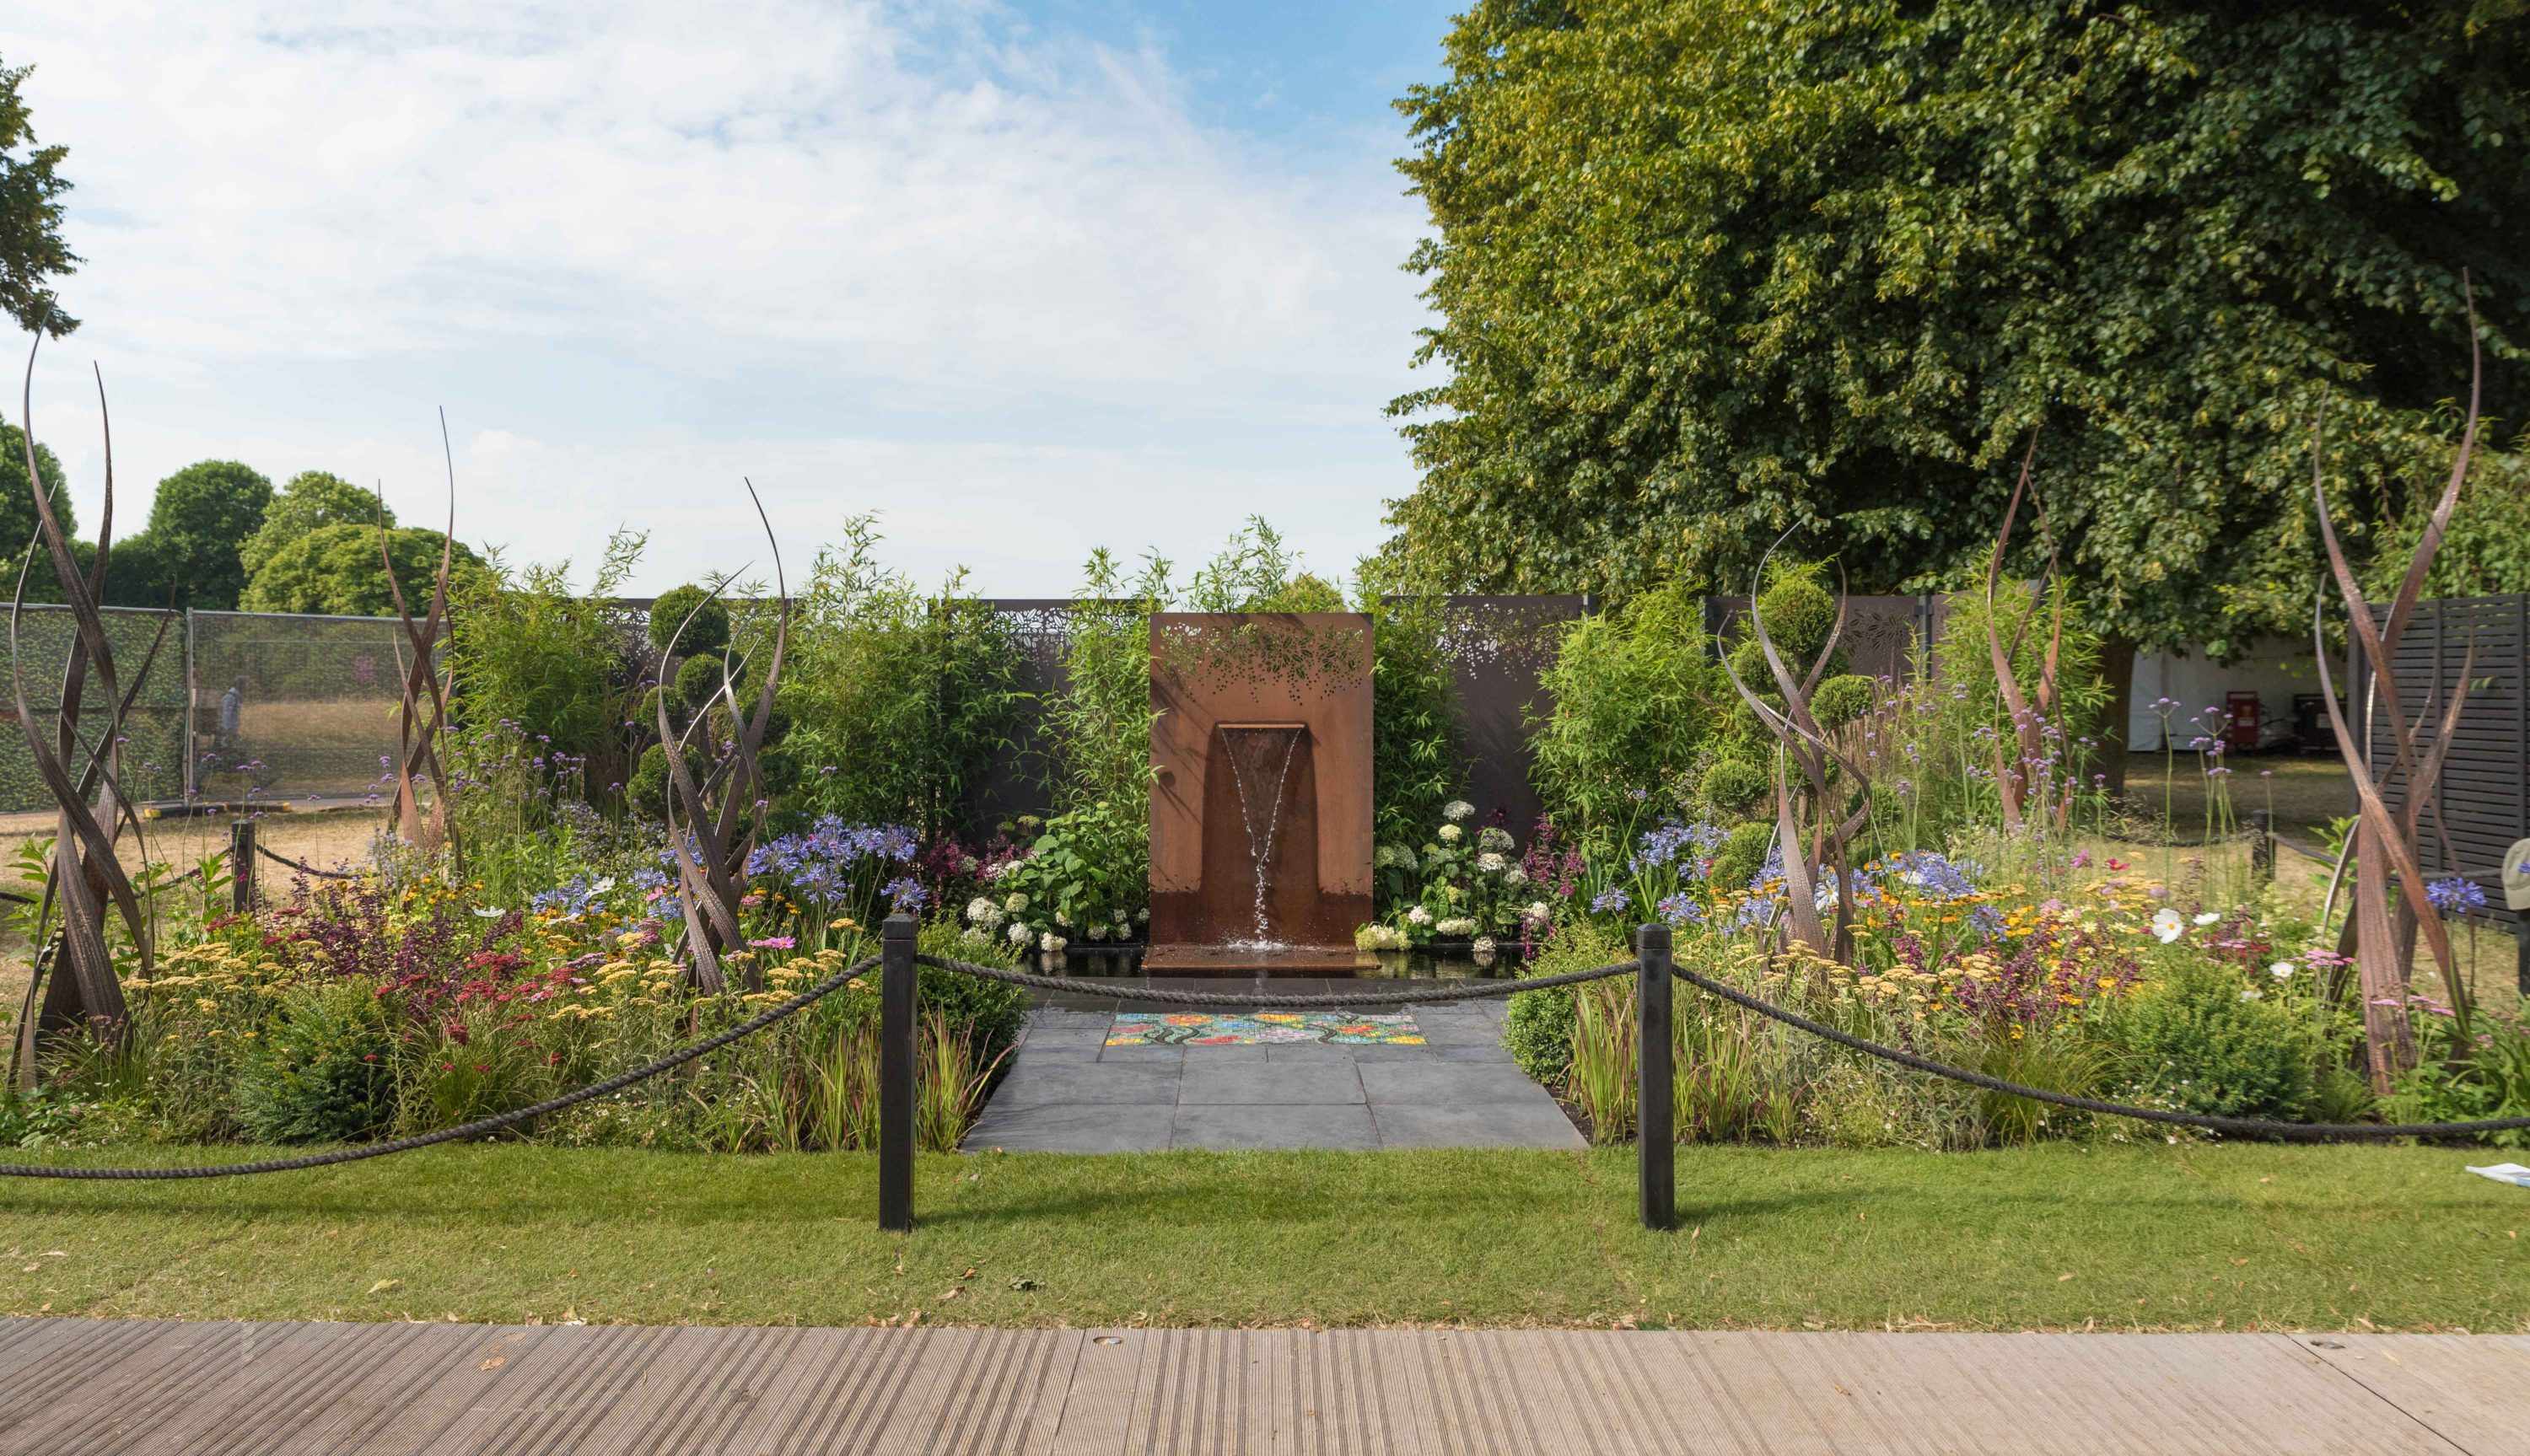 2018 July 4th Hampton Court Palace Flower Show Brilliance in Bloom-1